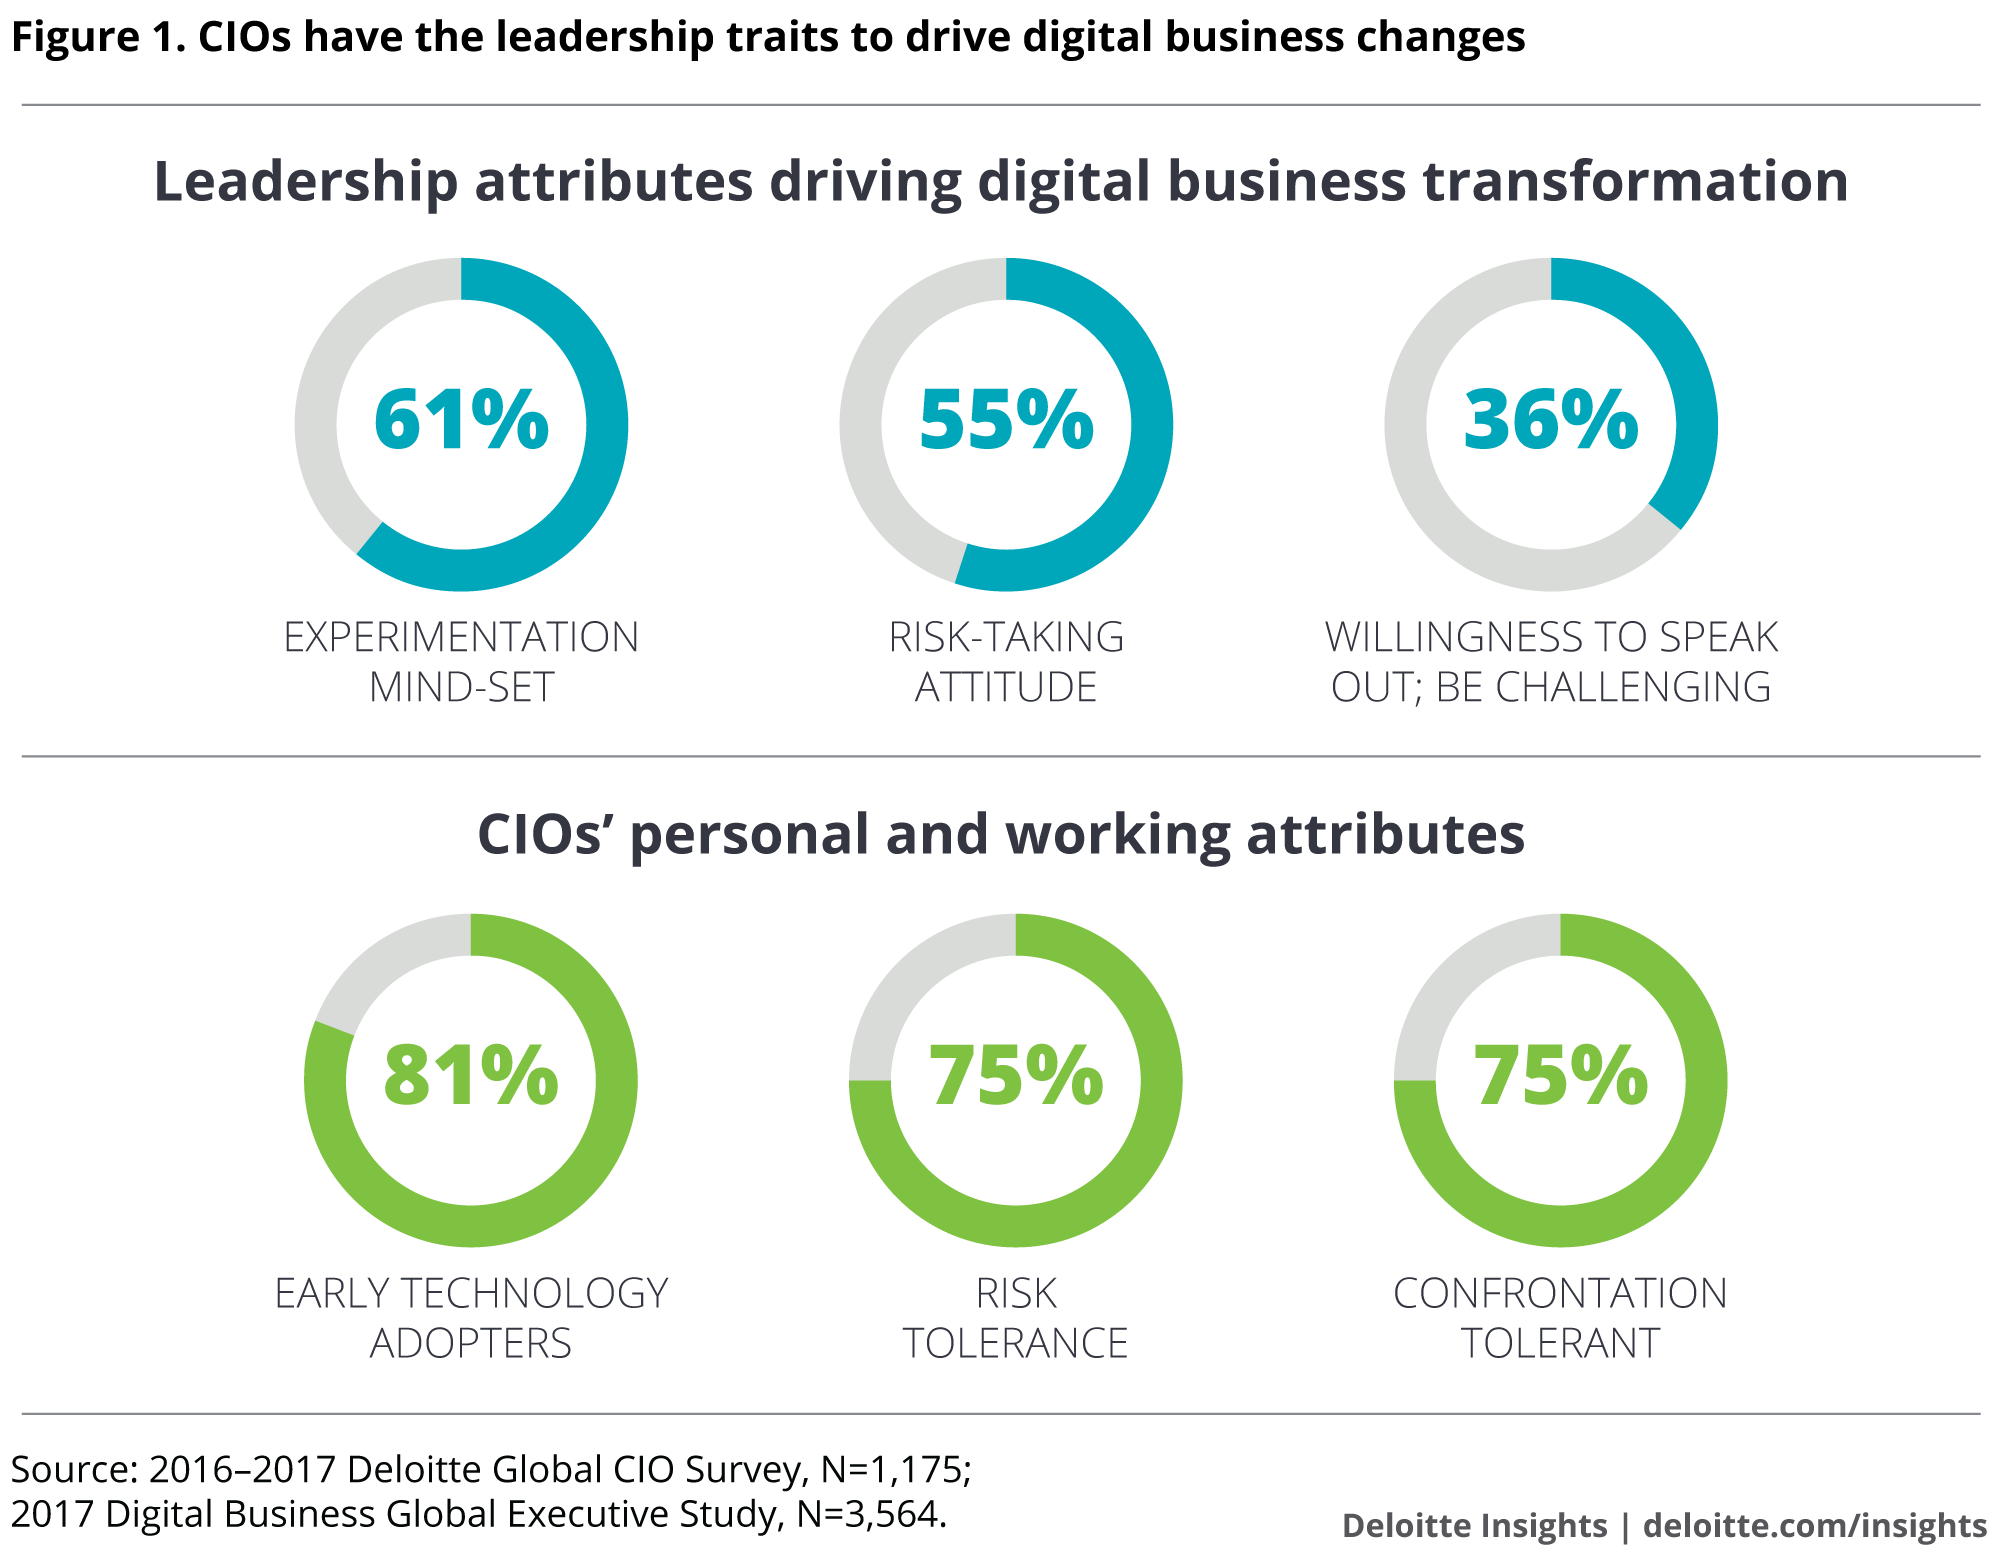 CIOs have the leadership traits to drive digital business changes